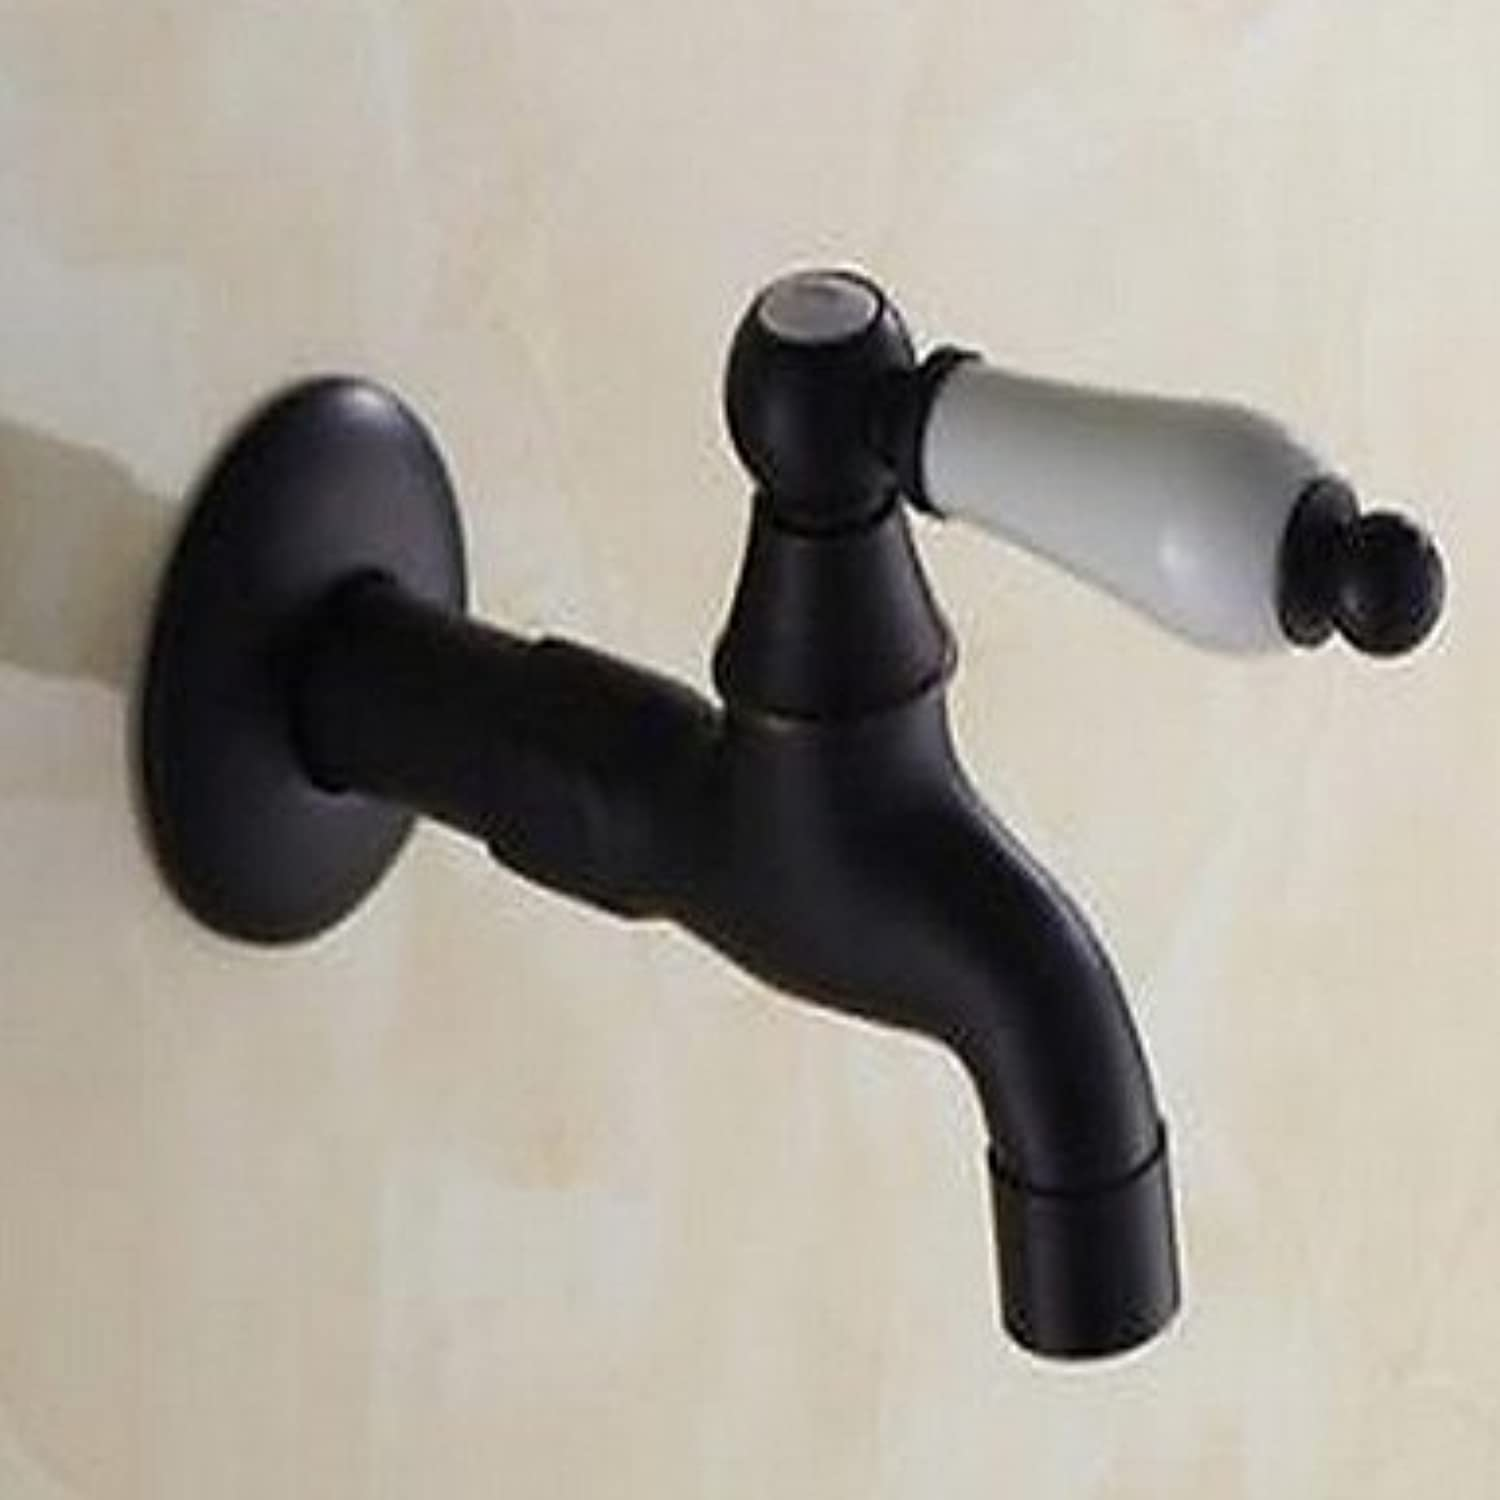 Art Deco Retro Vessel Brass Valve Single Handle One Hole Oil-Rubbed Bronze, Bathroom Sink Faucet